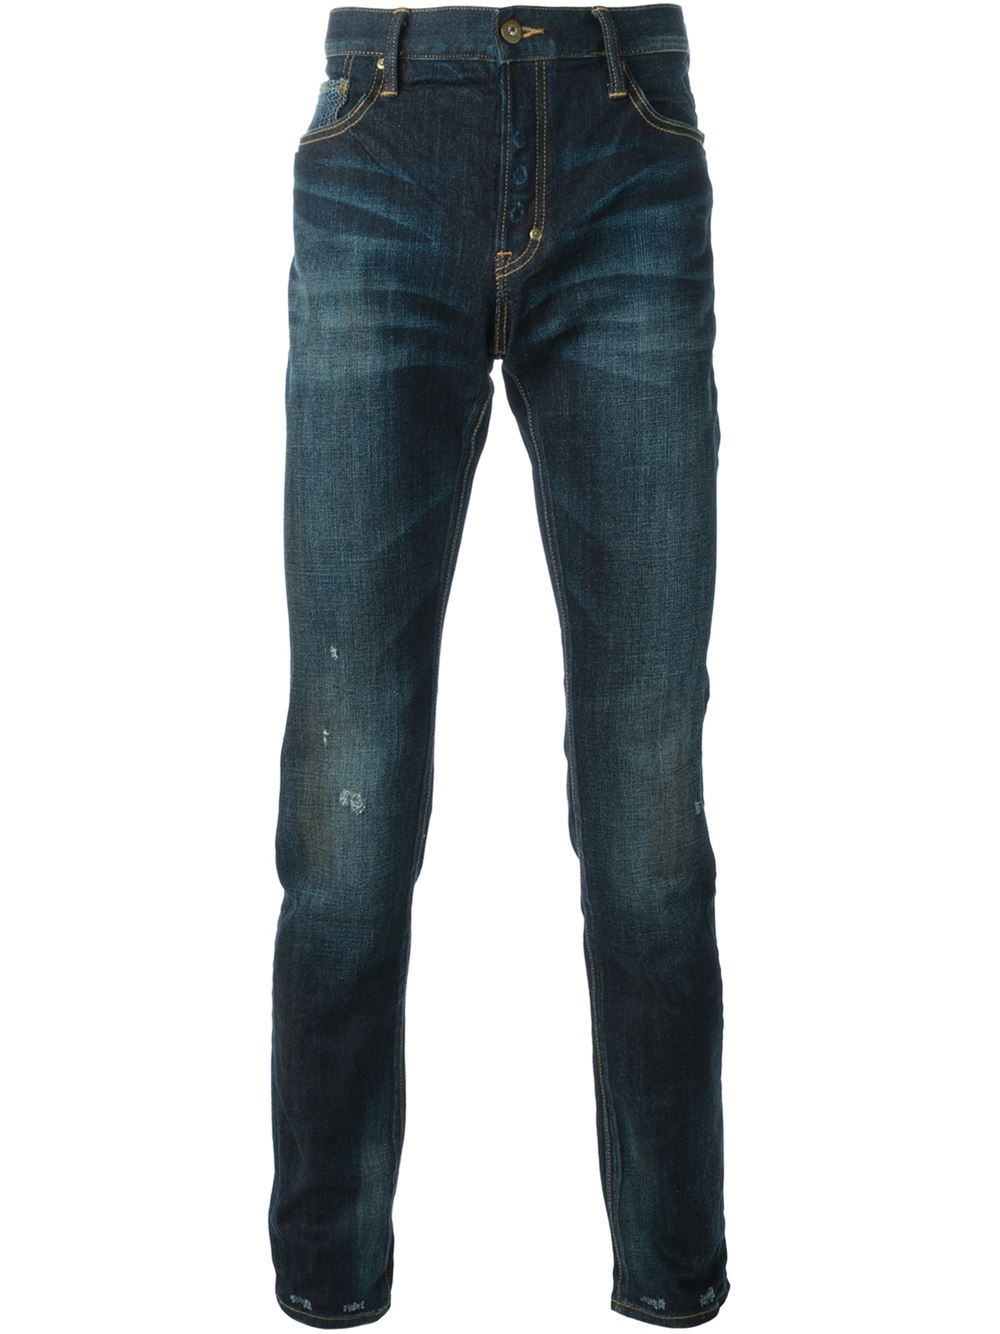 PRPS 'Swinger Easy Pant' Distressed Jeans in Blue for Men